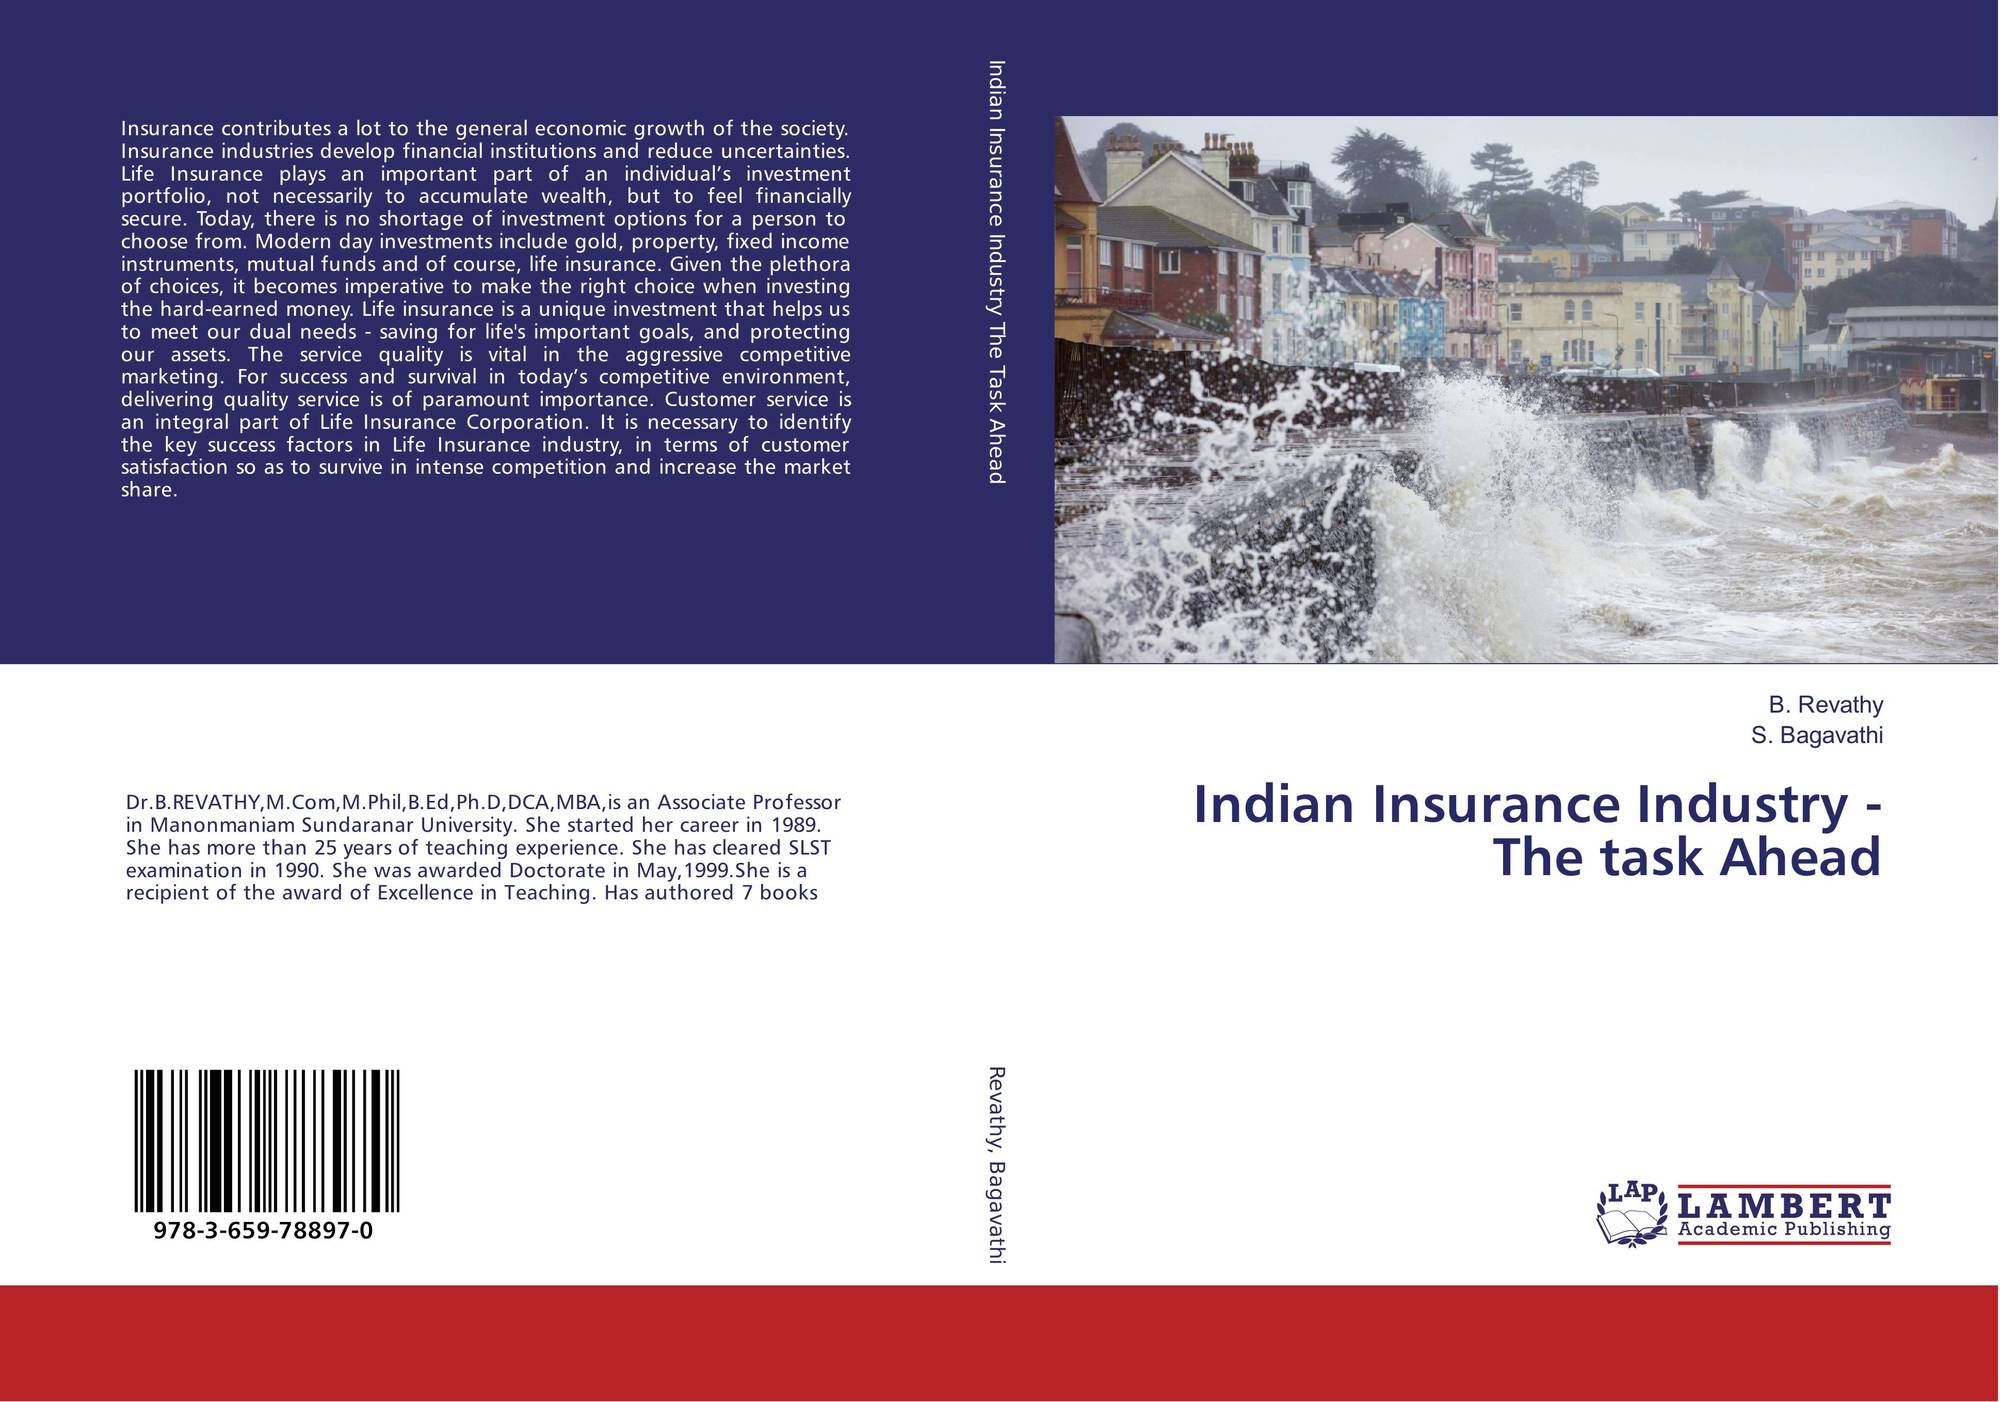 indian insurance industry an industry competitive This paper makes an attempt to assess the state of competition in the indian life insurance industry for the period 2000-01 to 2014-15 highlighting the nature of competition after the economic reforms in the economy.